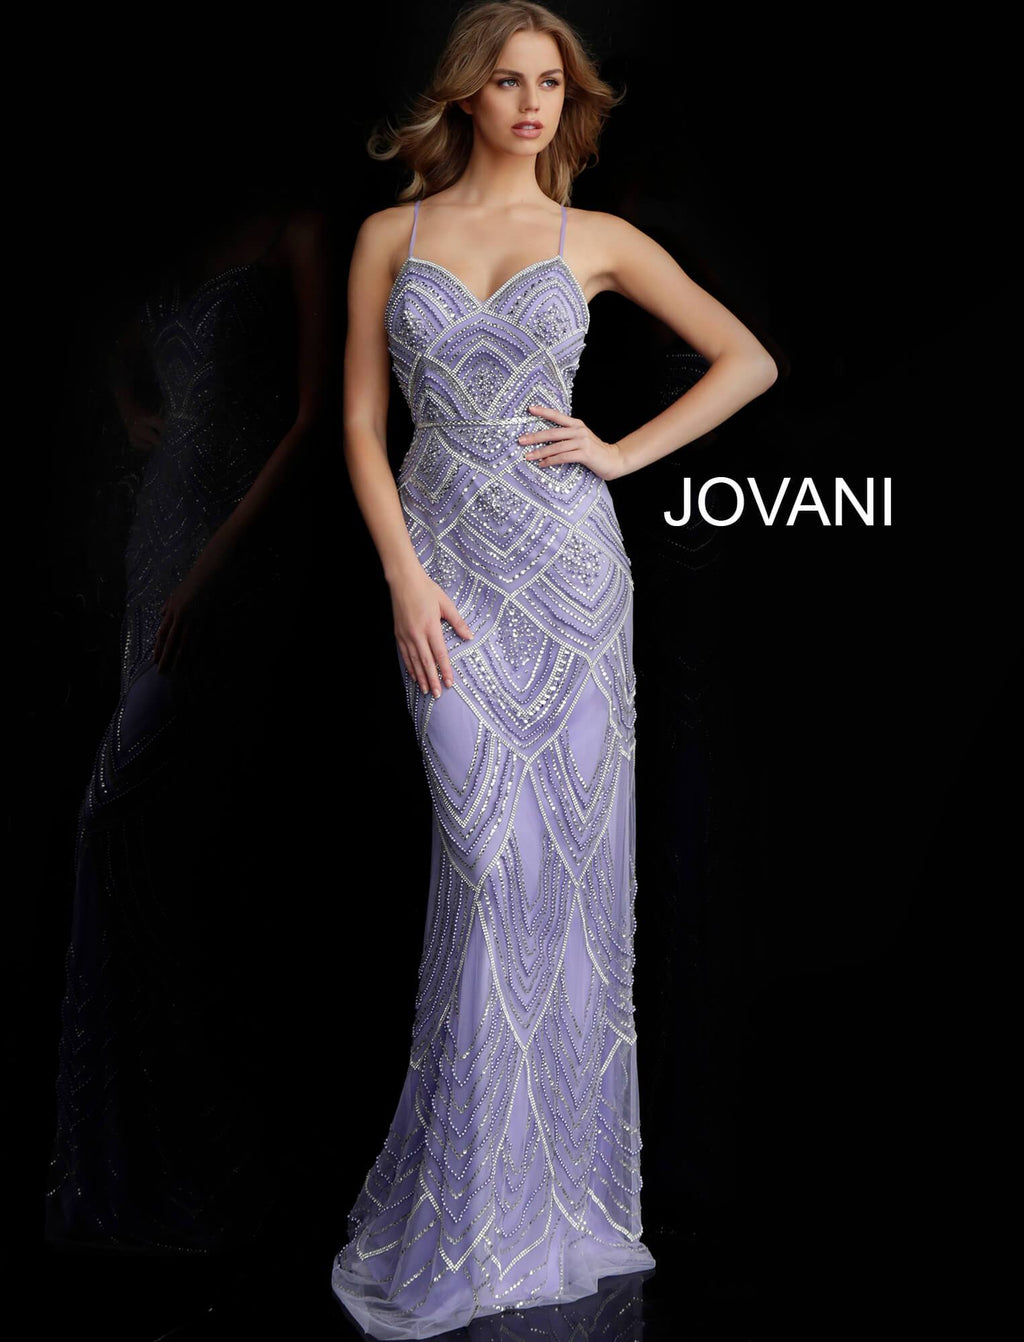 Jovani Lilac Pearl & Crystal Gown - Gissings Boutique